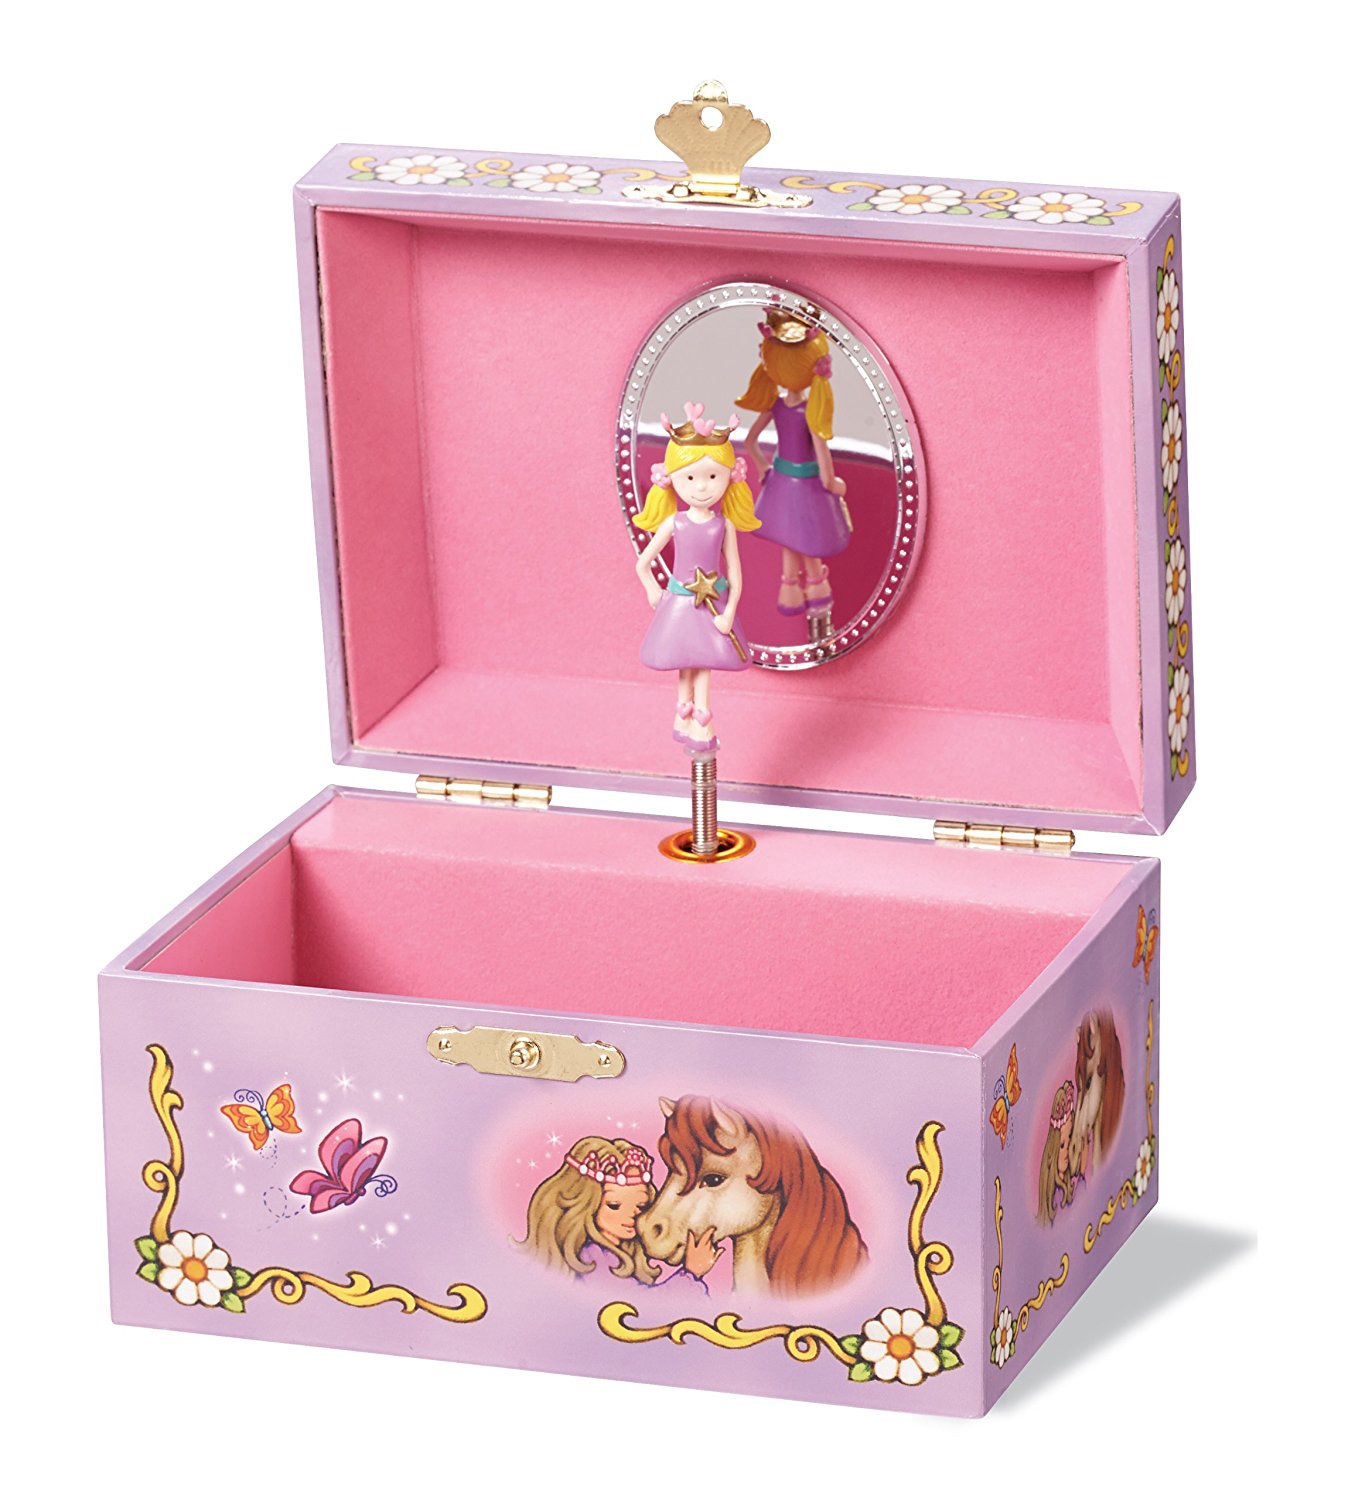 The 15 best girls 39 jewelry boxes zen merchandiser for Amazon ballerina musical jewelry box